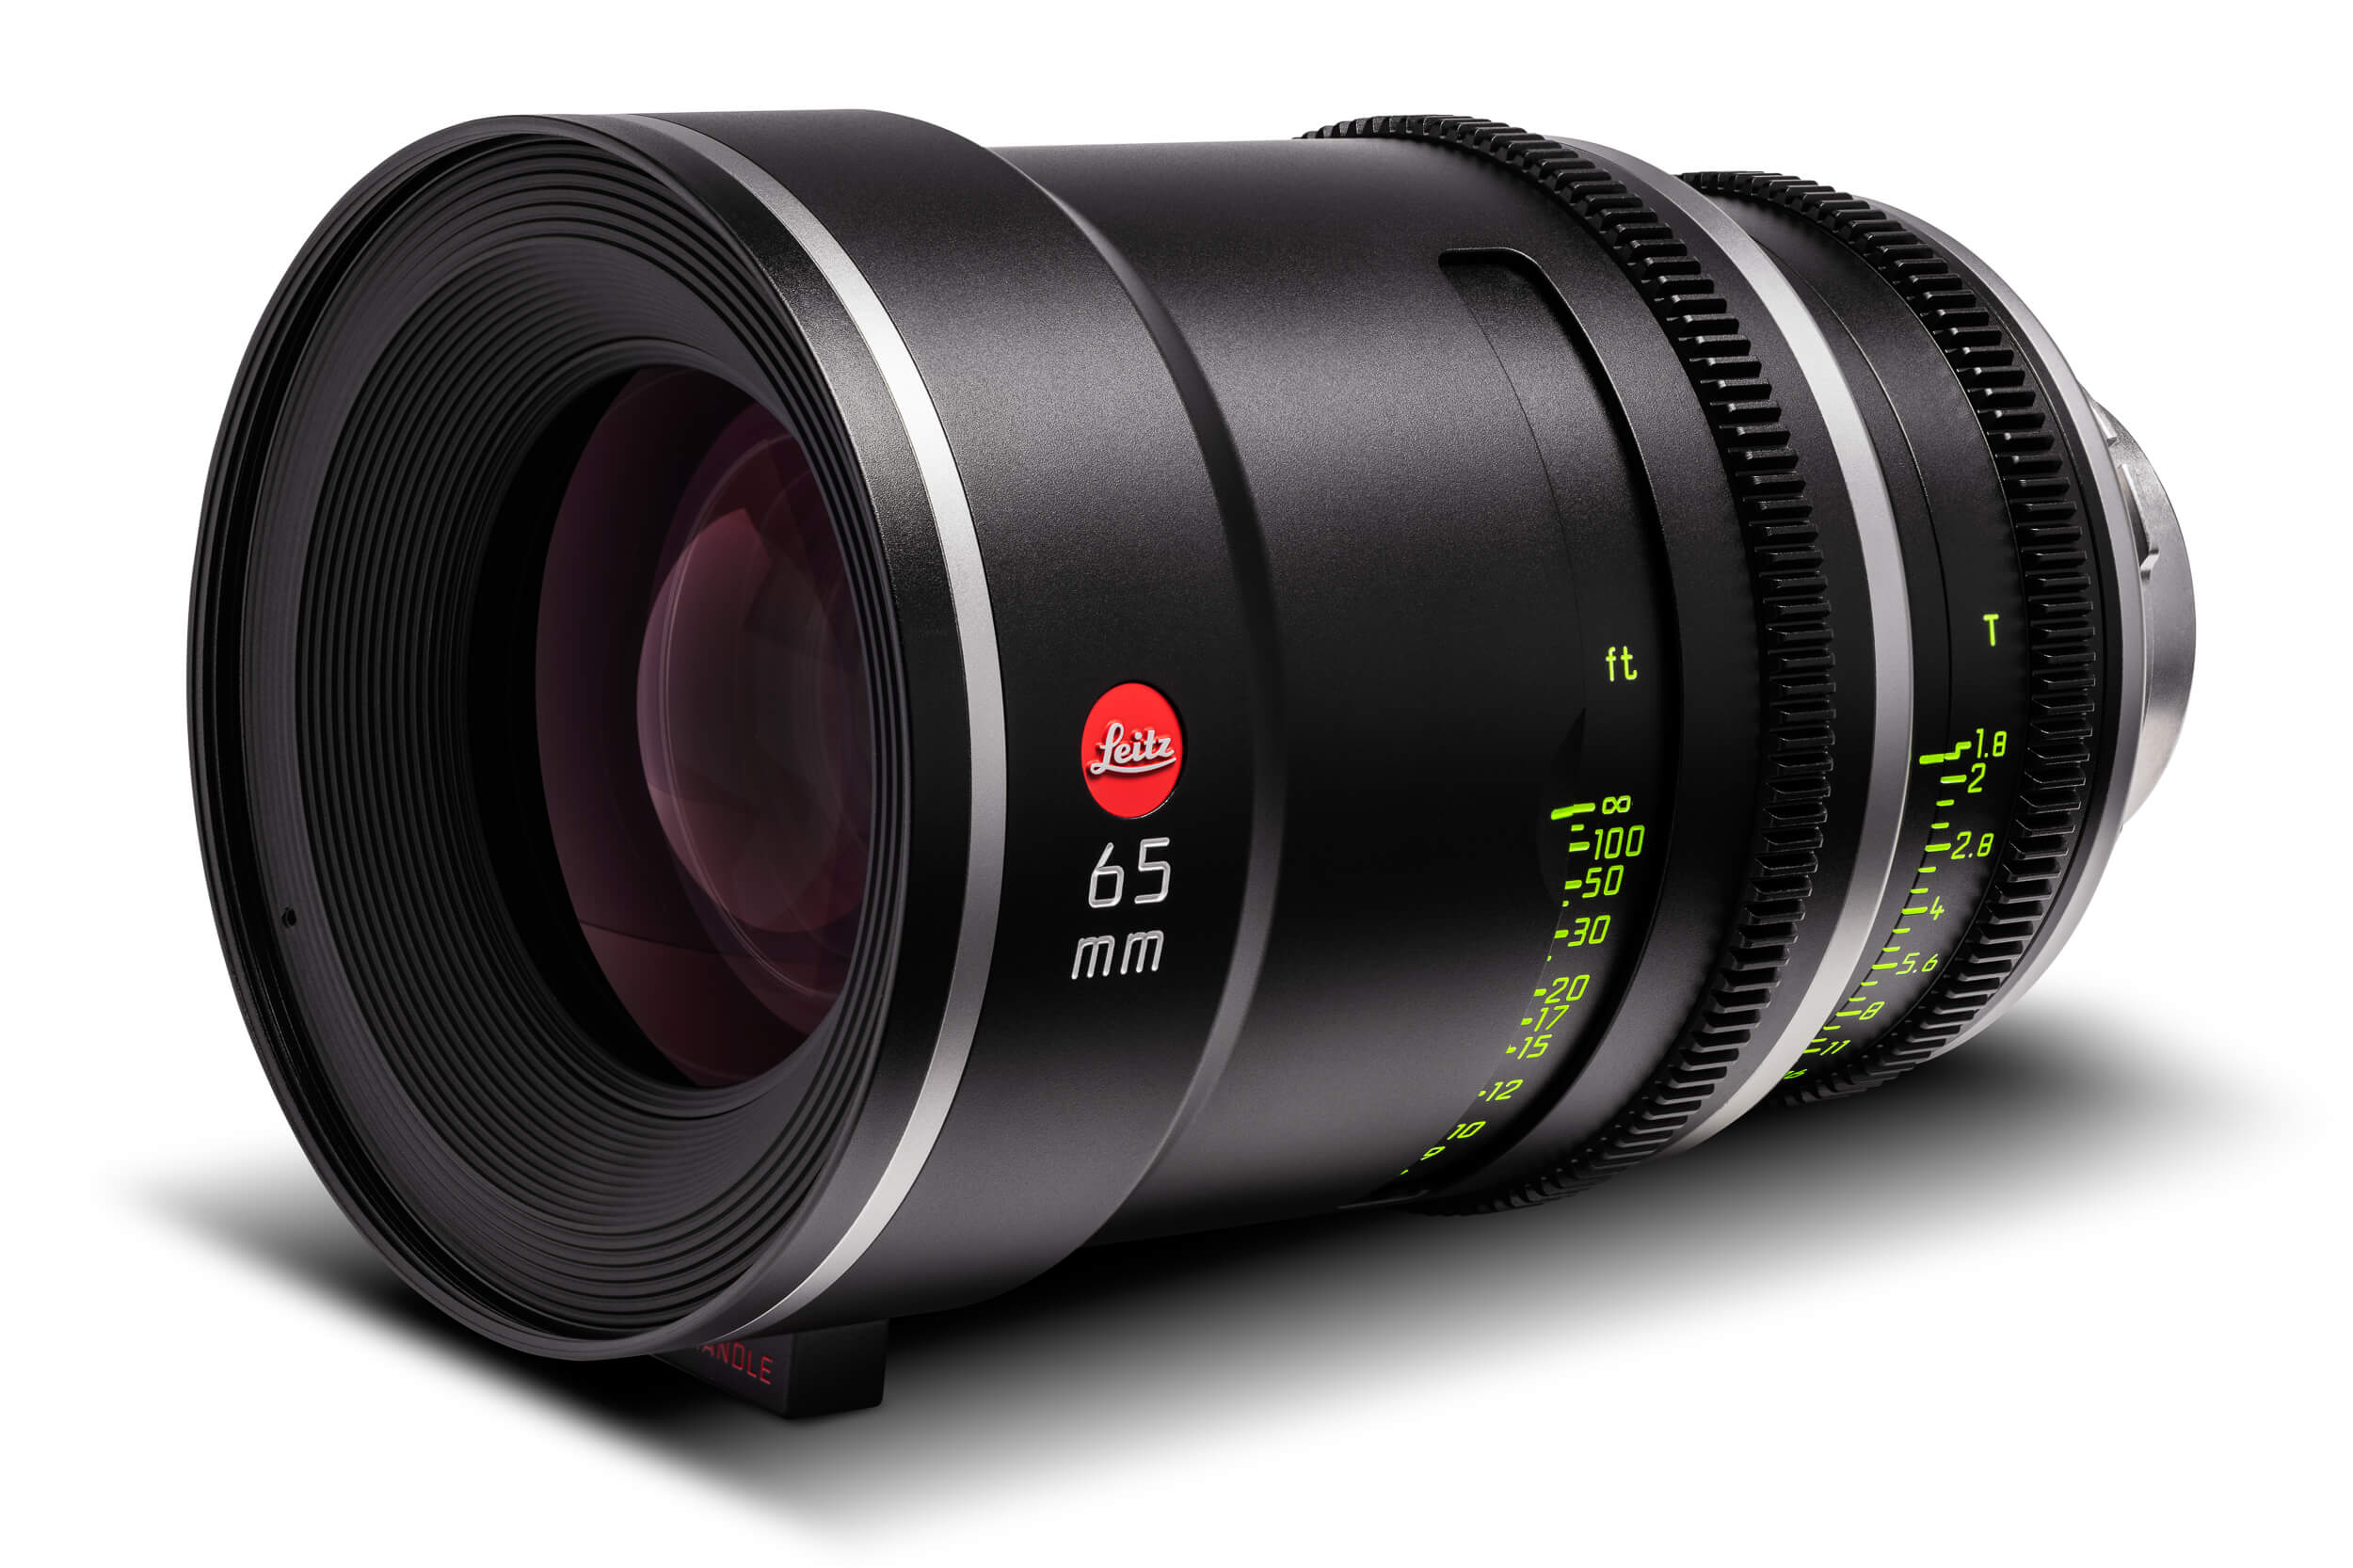 Leitz Prime 65mm full frame lens